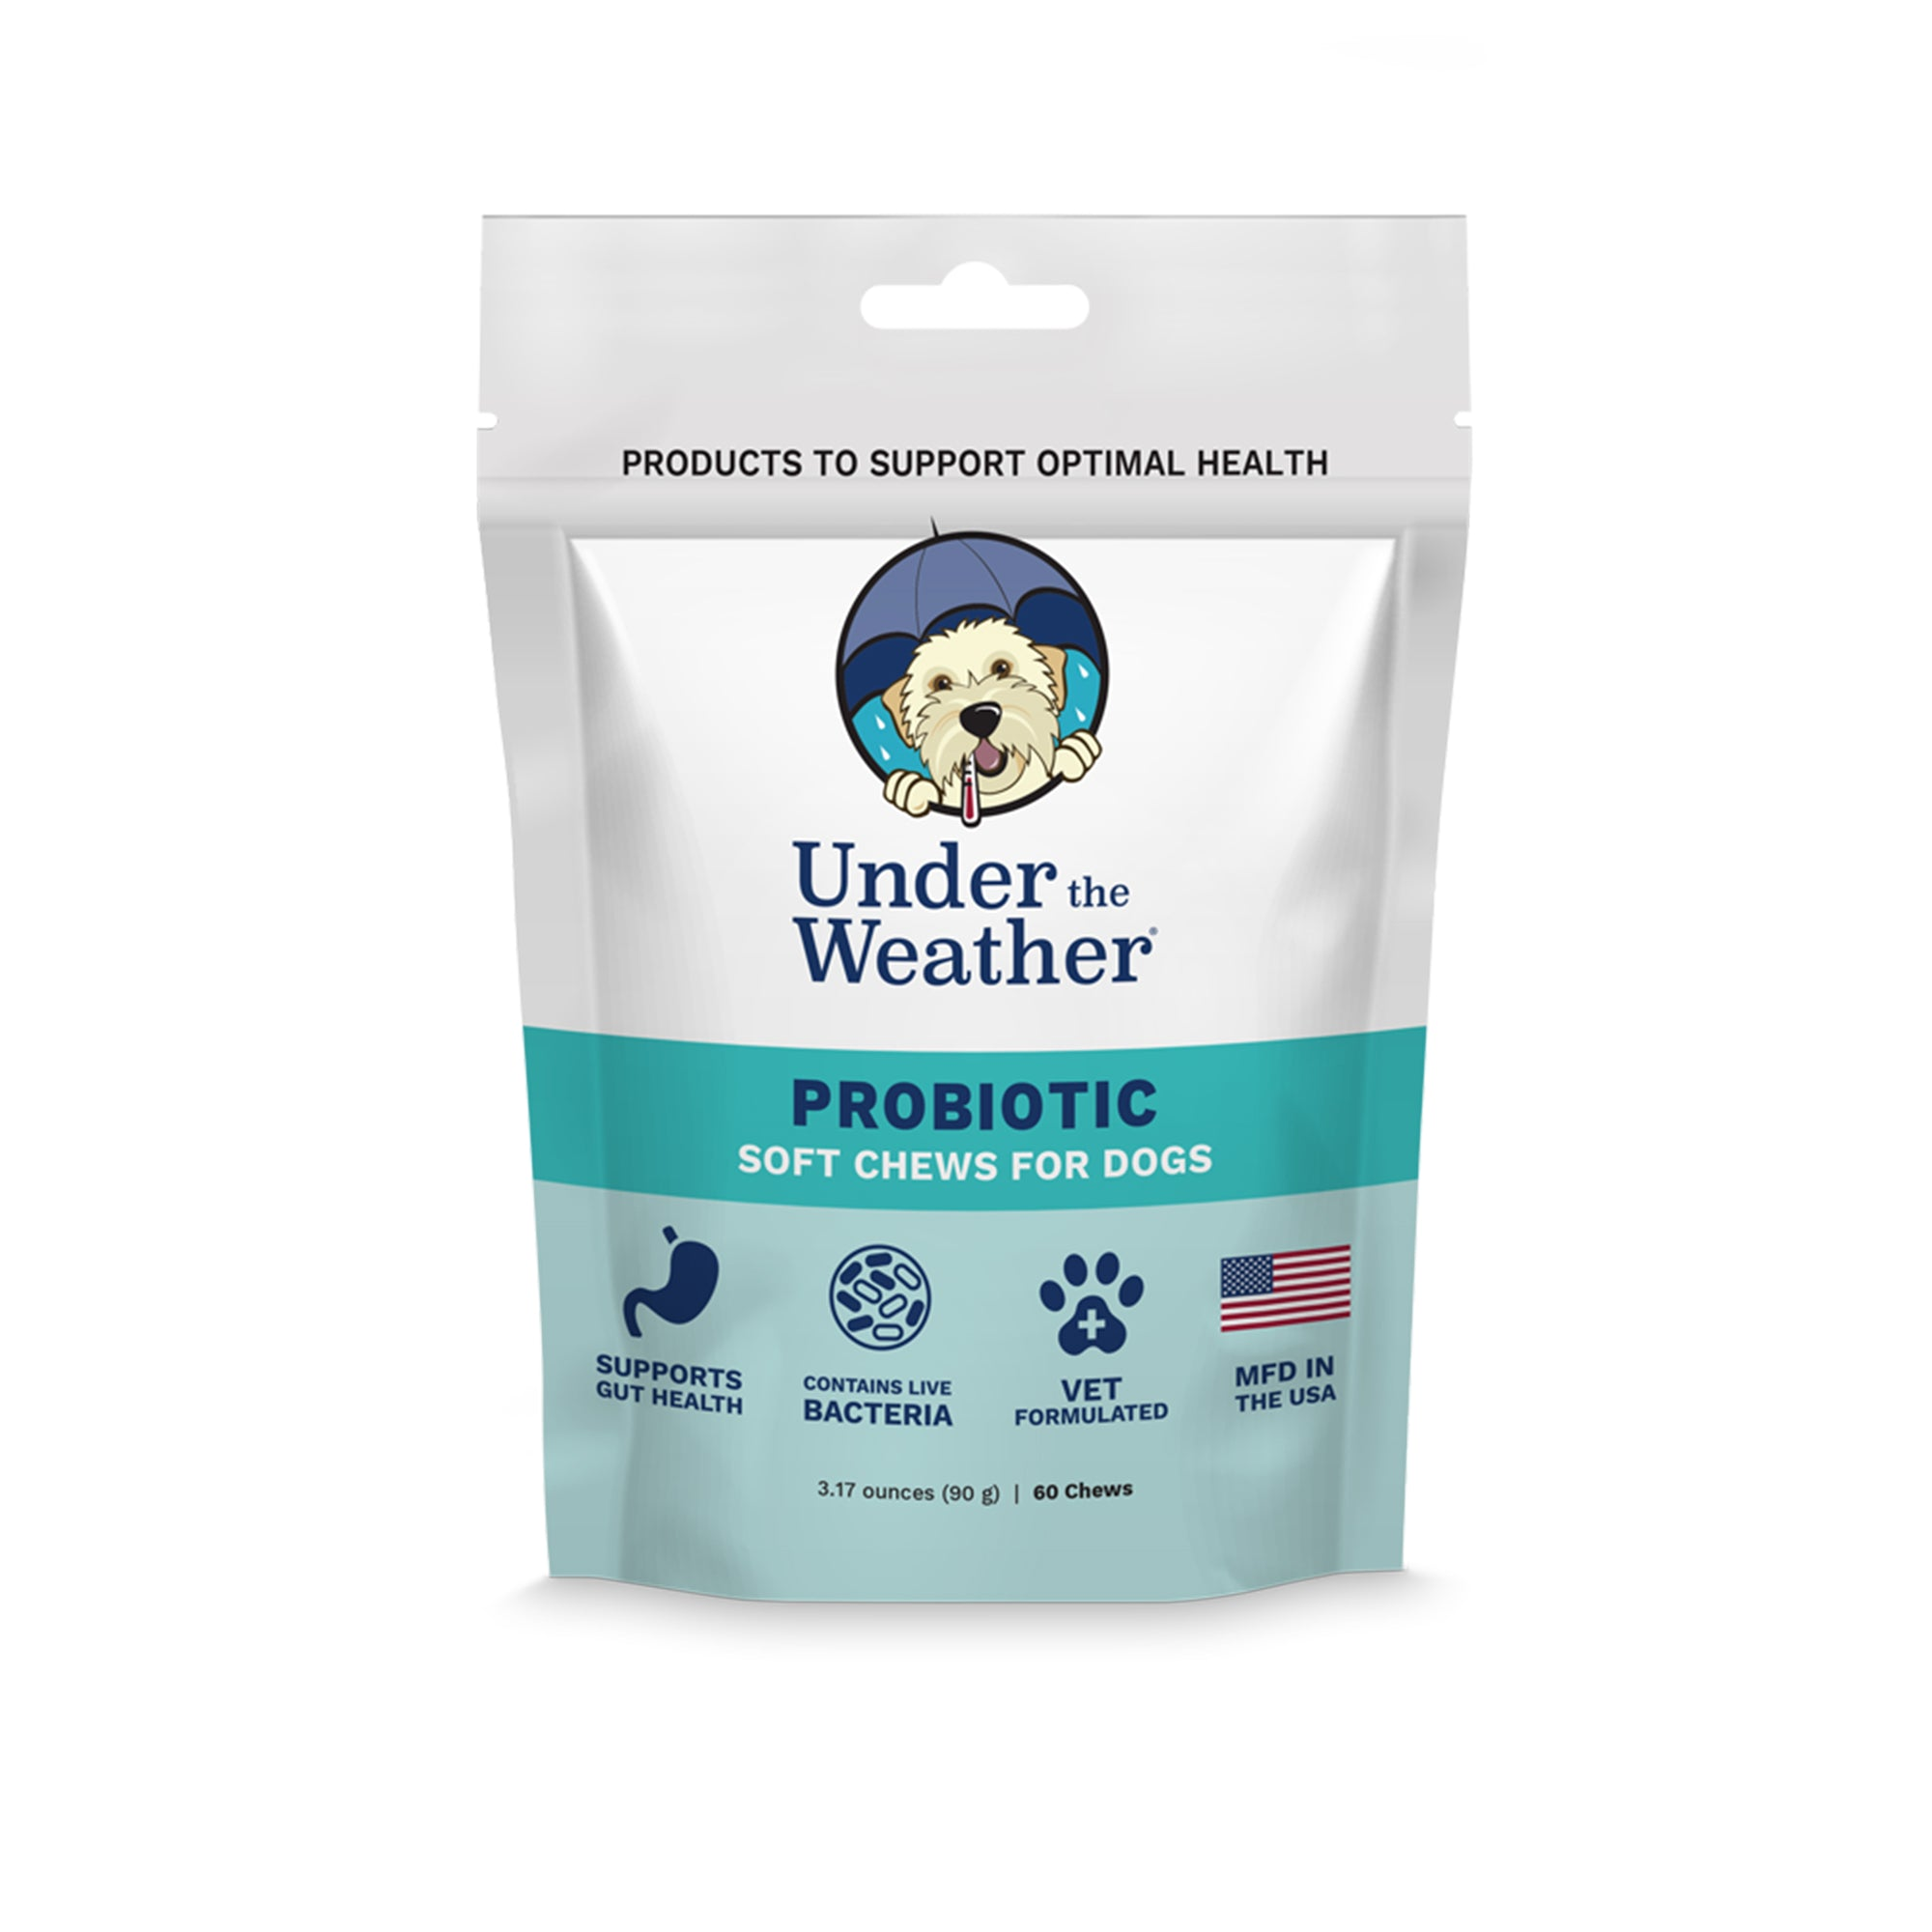 Probiotic Soft Chews For Dogs